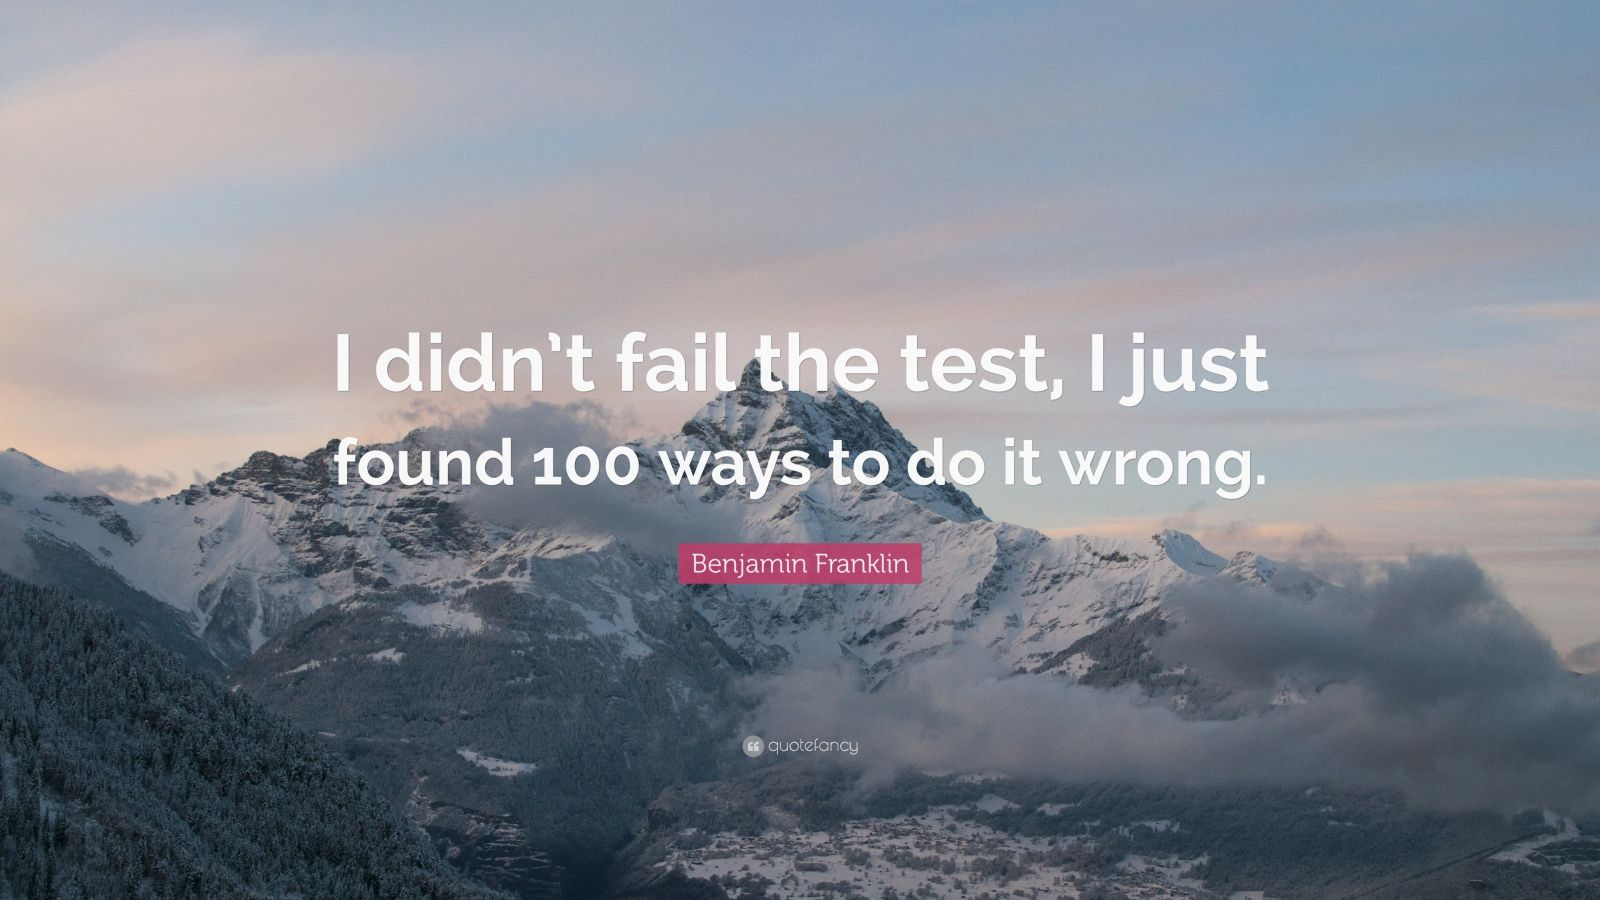 """Benjamin Franklin Quote: """"I didn't fail the test, I just found 100 ways to do it wrong."""""""